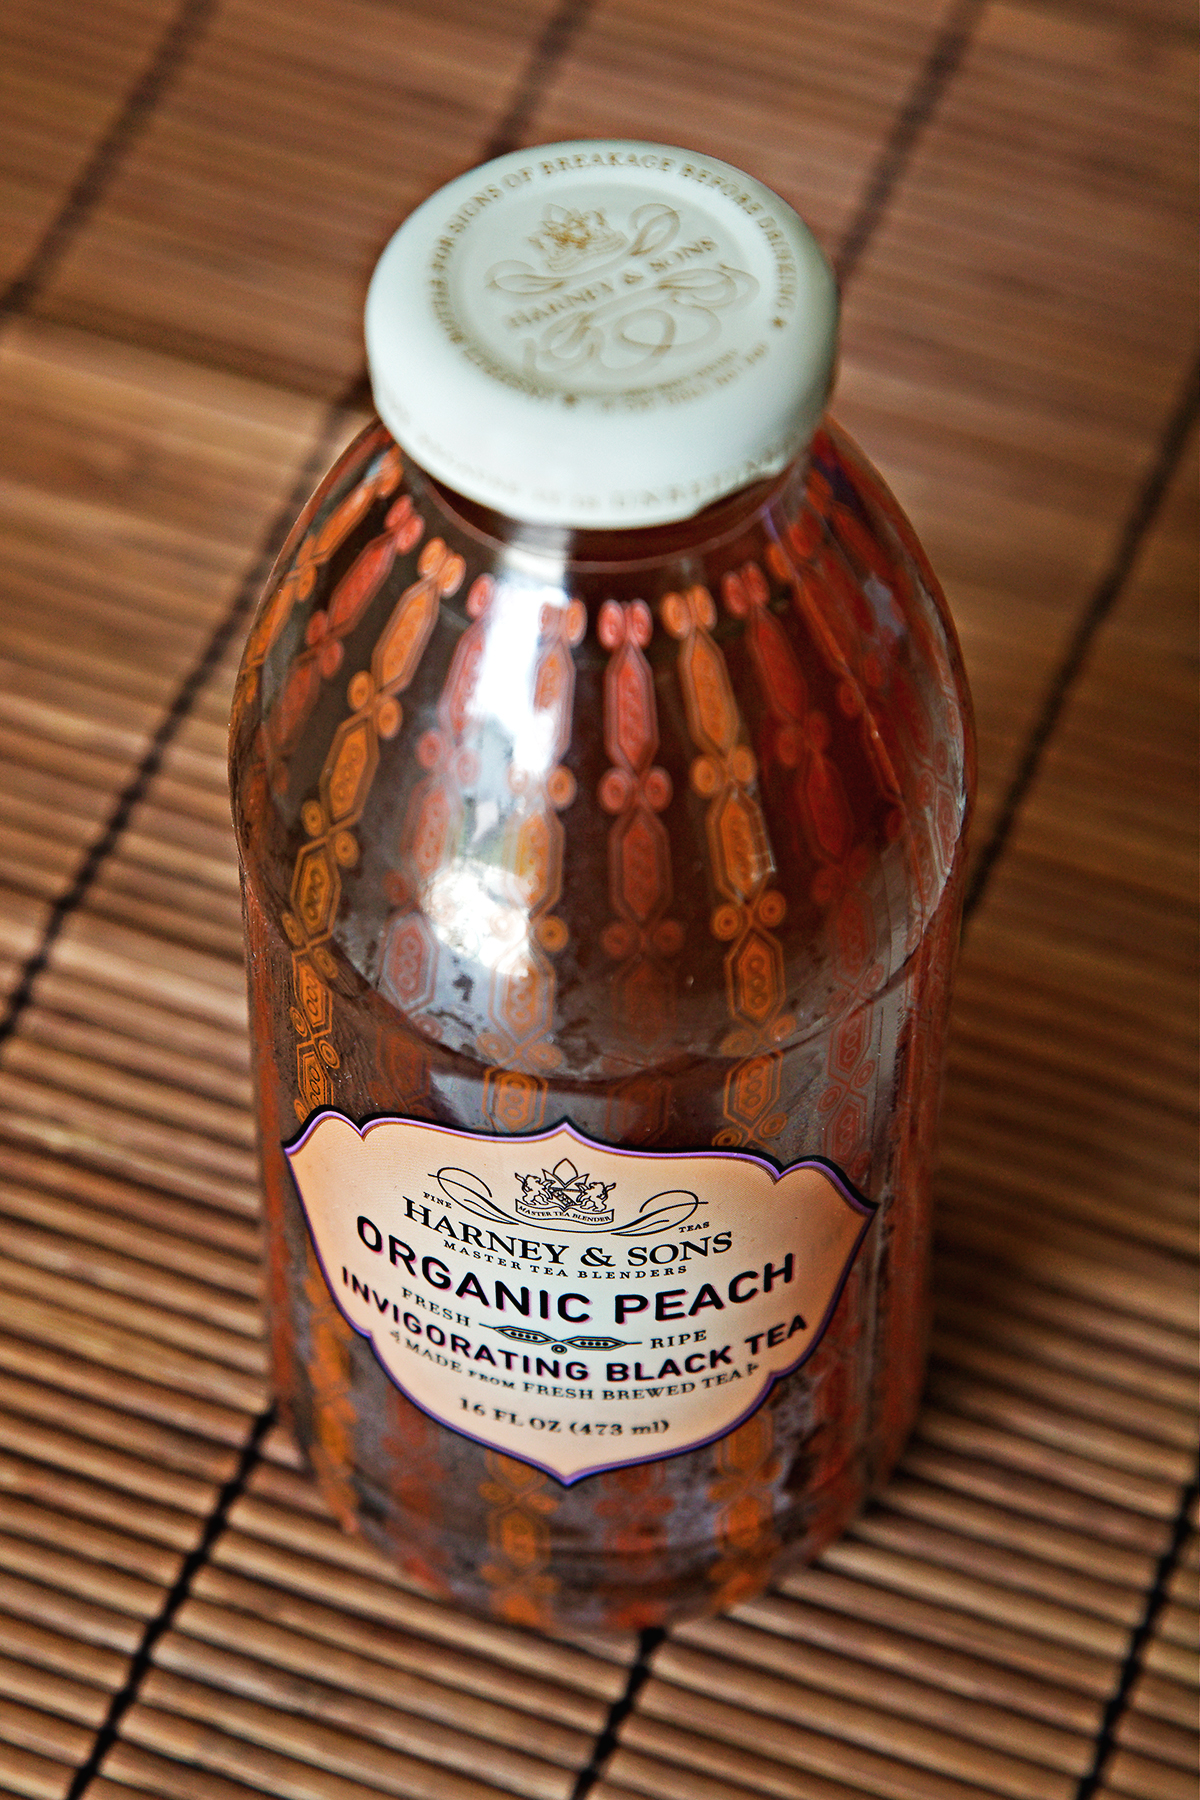 Tea Review: Bottled Organic Peach Invigorating Black Tea - Harney & Sons